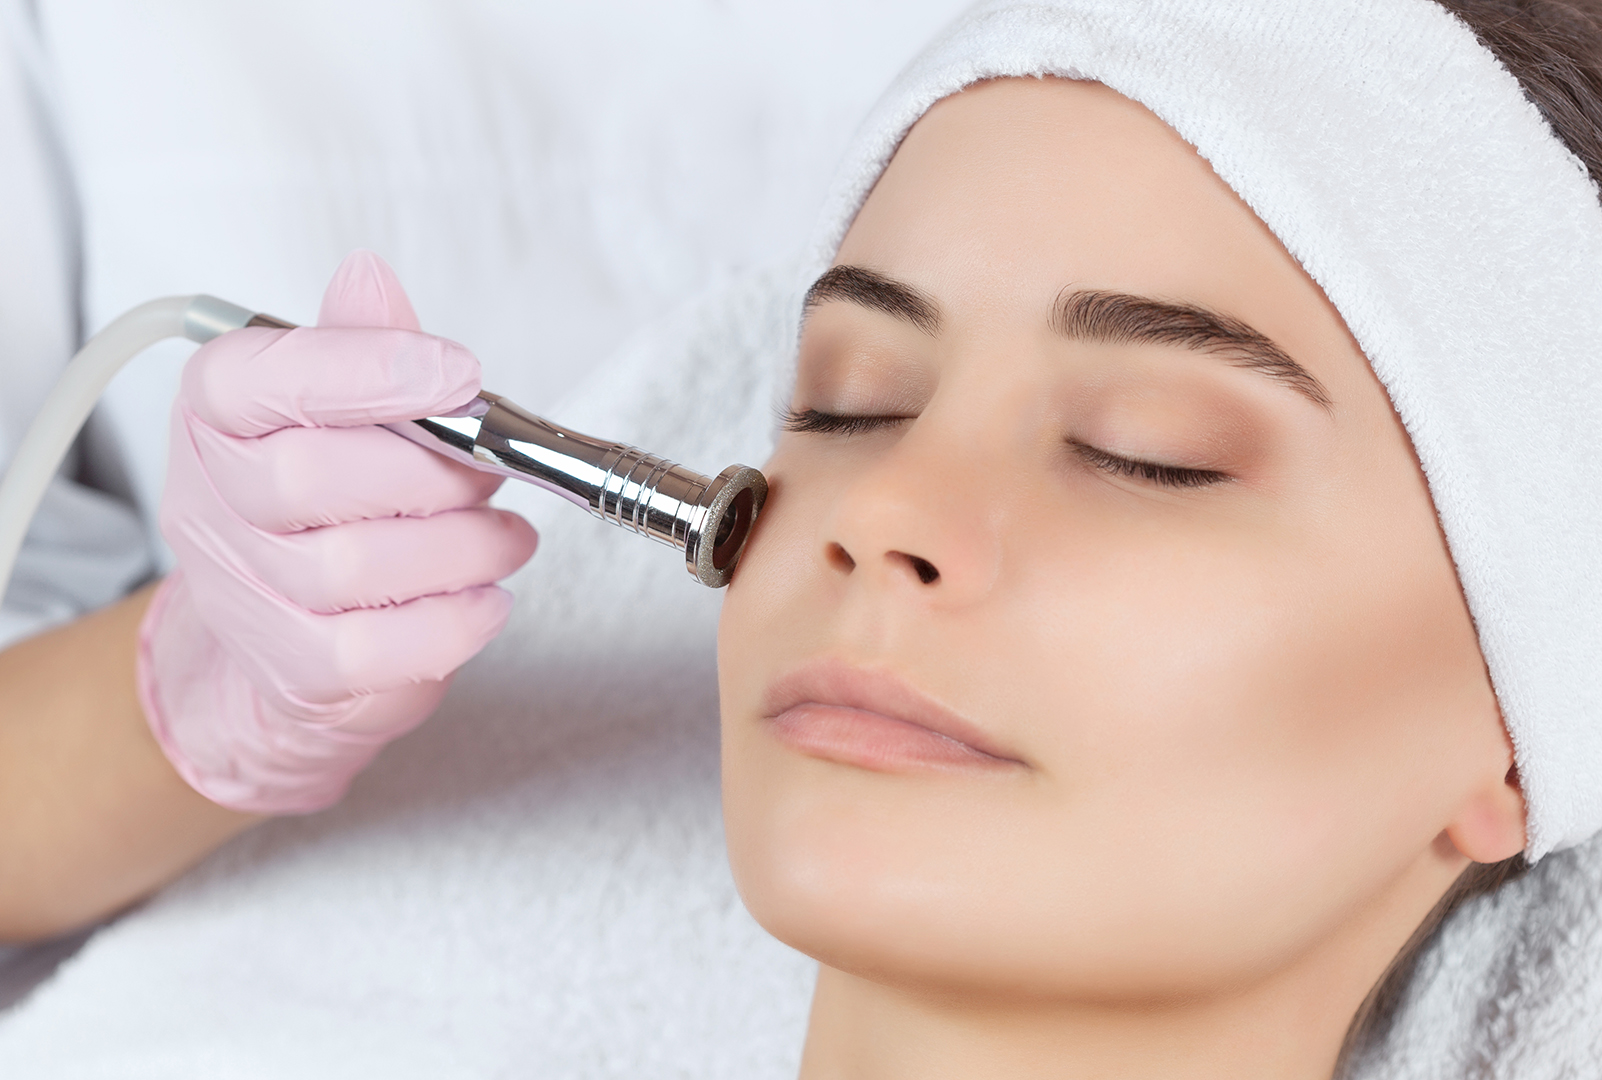 "PORE REFINING MICRODERMABRASION - Suitable for: All skin types, open pores, dry skin, sun damage, ageing, fine lines and wrinkles.Duration: 40 minCost: $155Suggested treatment intervals: 3-6 weekly depending on the skin typeDowntime: zero-minimalAnyone and everyone will benefit from this smoothing, hydrating and rejuvenating Treatment. A great skin pick-me-up before a special event!Microdermabrasion uses diamond tip technology and suction to gently but effectively exfoliate the skin. The pain-free treatment removes dead skin to reveal a smoother and brighter skin quality and improved overall texture whilst minimising open pores.Considered a ""lunch time"" treatment, this facial incorporates our signature Ultrasonophoresis deep cleanse preparing the skin for extractions (removal of unwanted blackheads and whiteheads).A purifying and detoxifying mask and our famous Multi Vitamin infusion to calm, restore and hydrate offers the ultimate finish!Suggested homecare products: Ultimate A Refining Serum, Ultra Smoothing Pore Refiner, Ultimate Bio Repair Moisturiser"